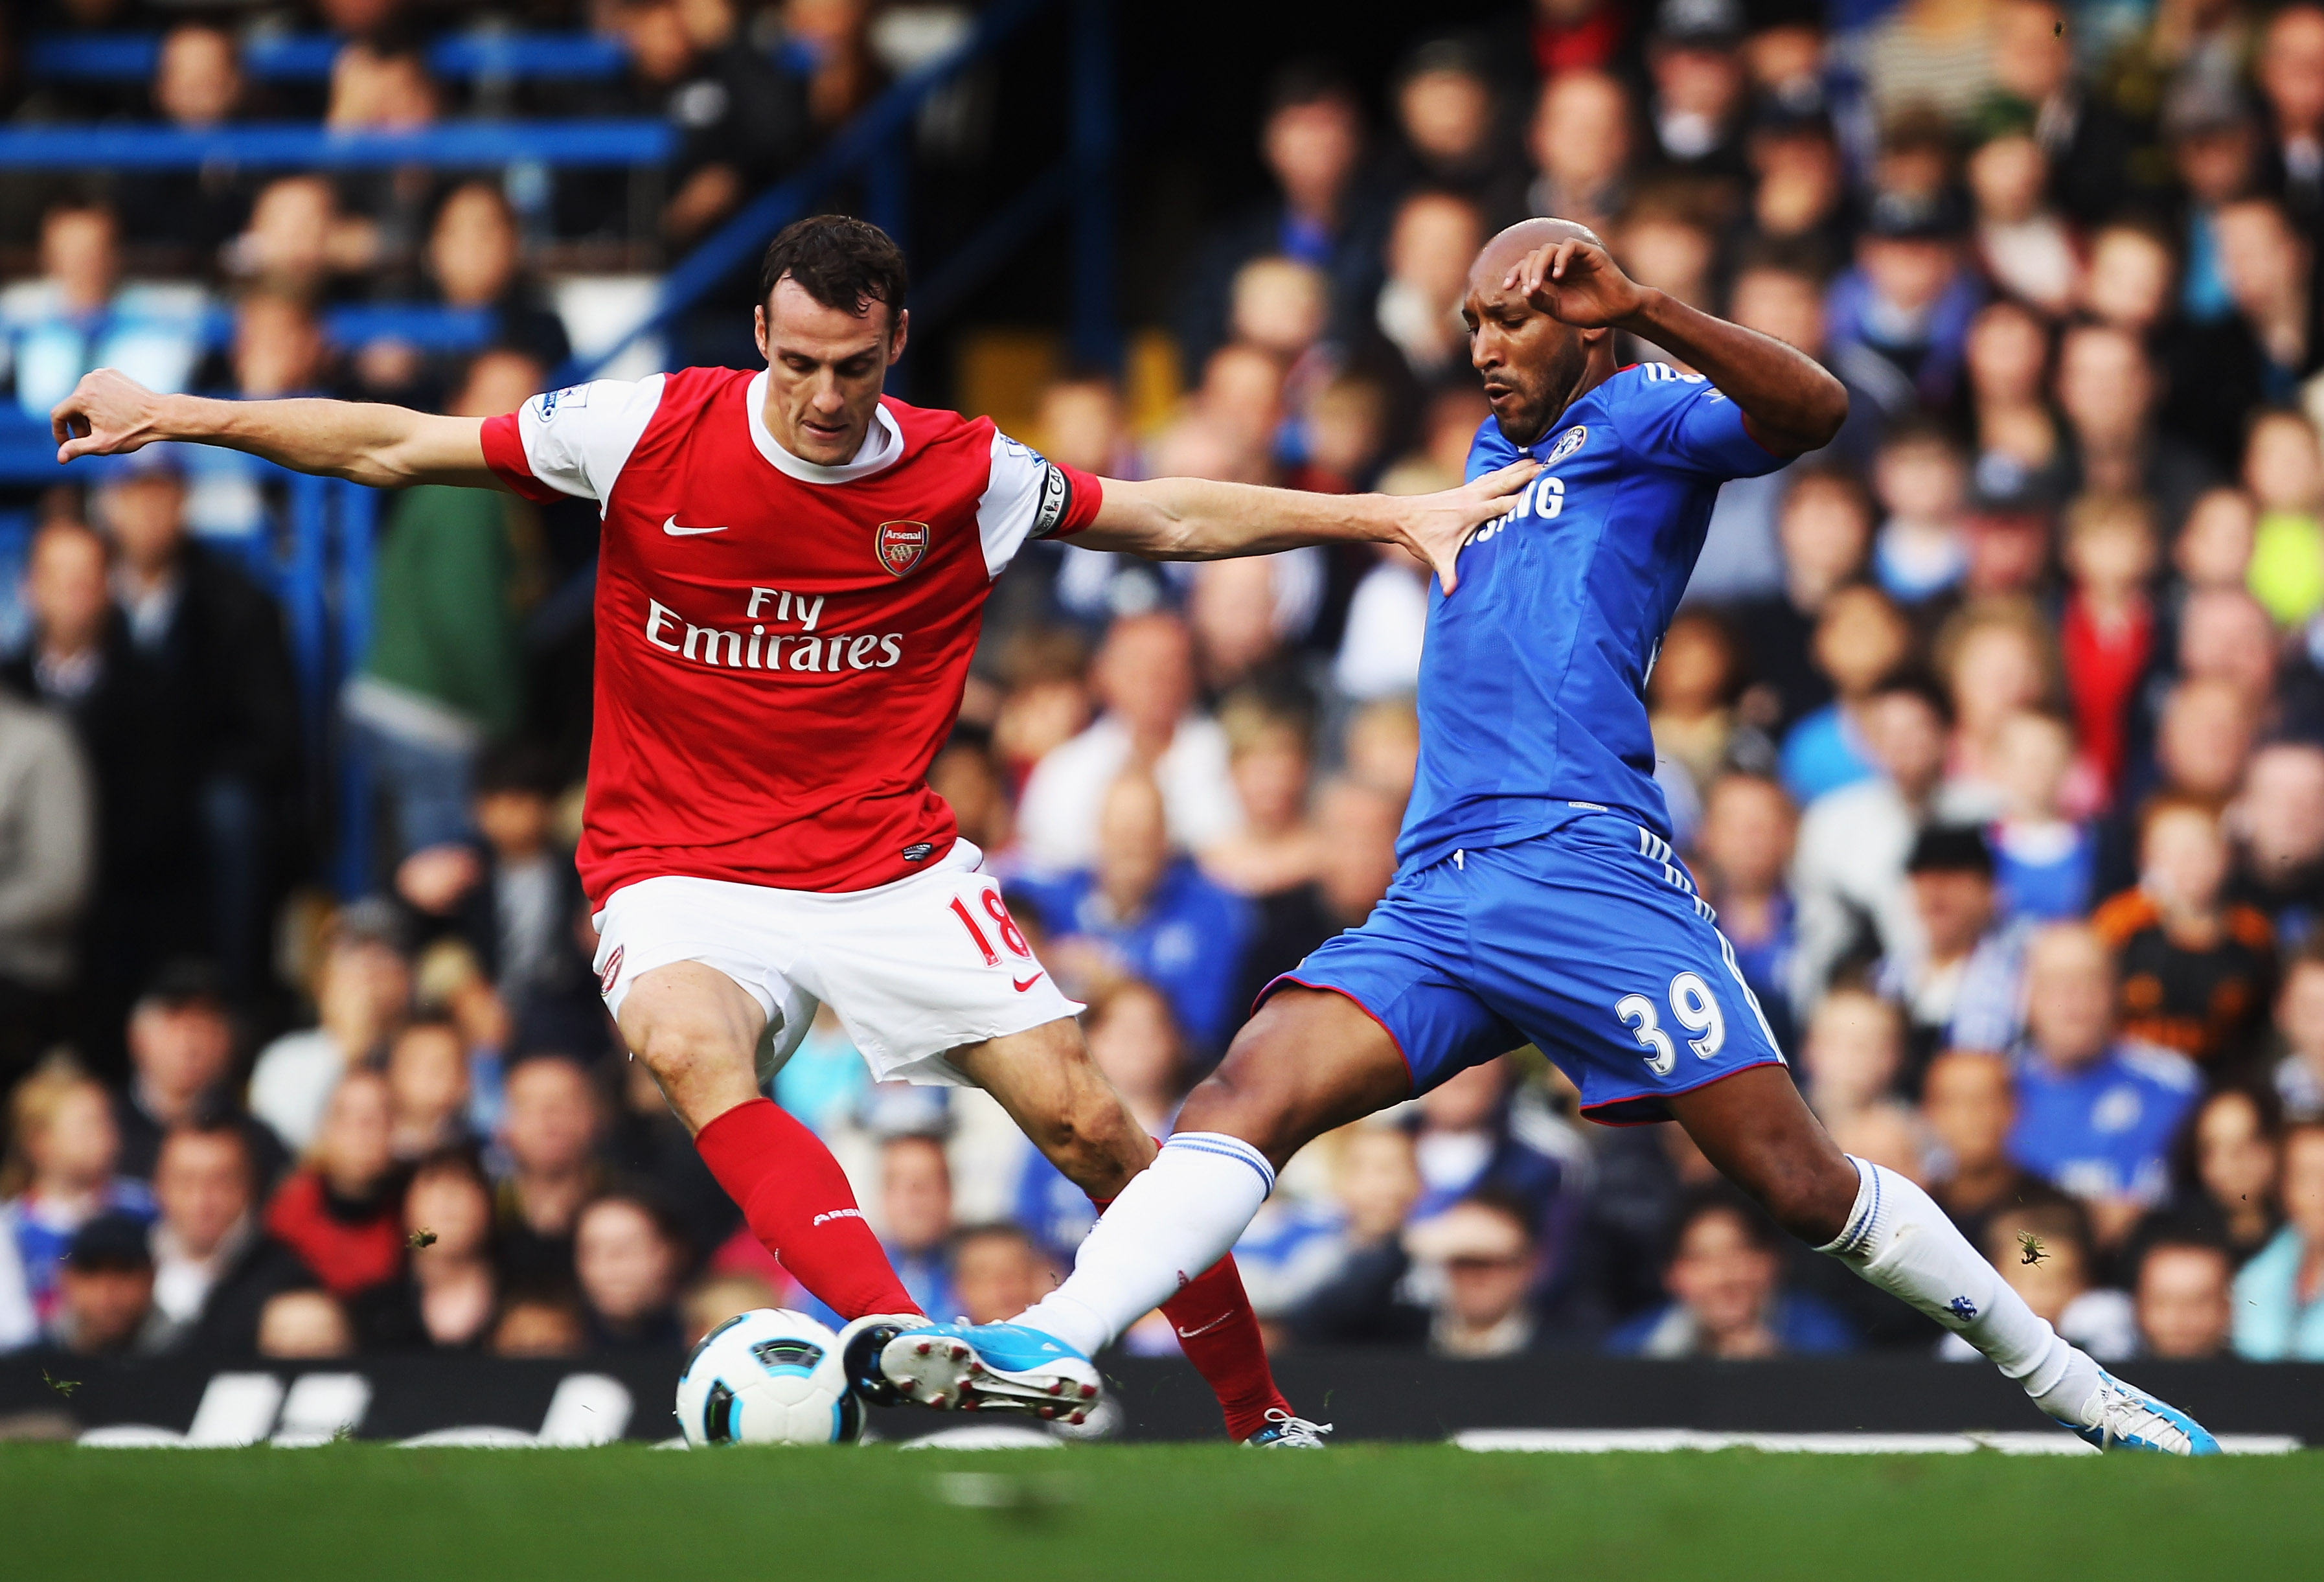 LONDON, ENGLAND - OCTOBER 03:  Nicolas Anelka of Chelsea tackles Sebastien Squillaci of Arsenal during the Barclays Premier League match between Chelsea and Arsenal at Stamford Bridge on October 3, 2010 in London, England.  (Photo by Bryn Lennon/Getty Ima